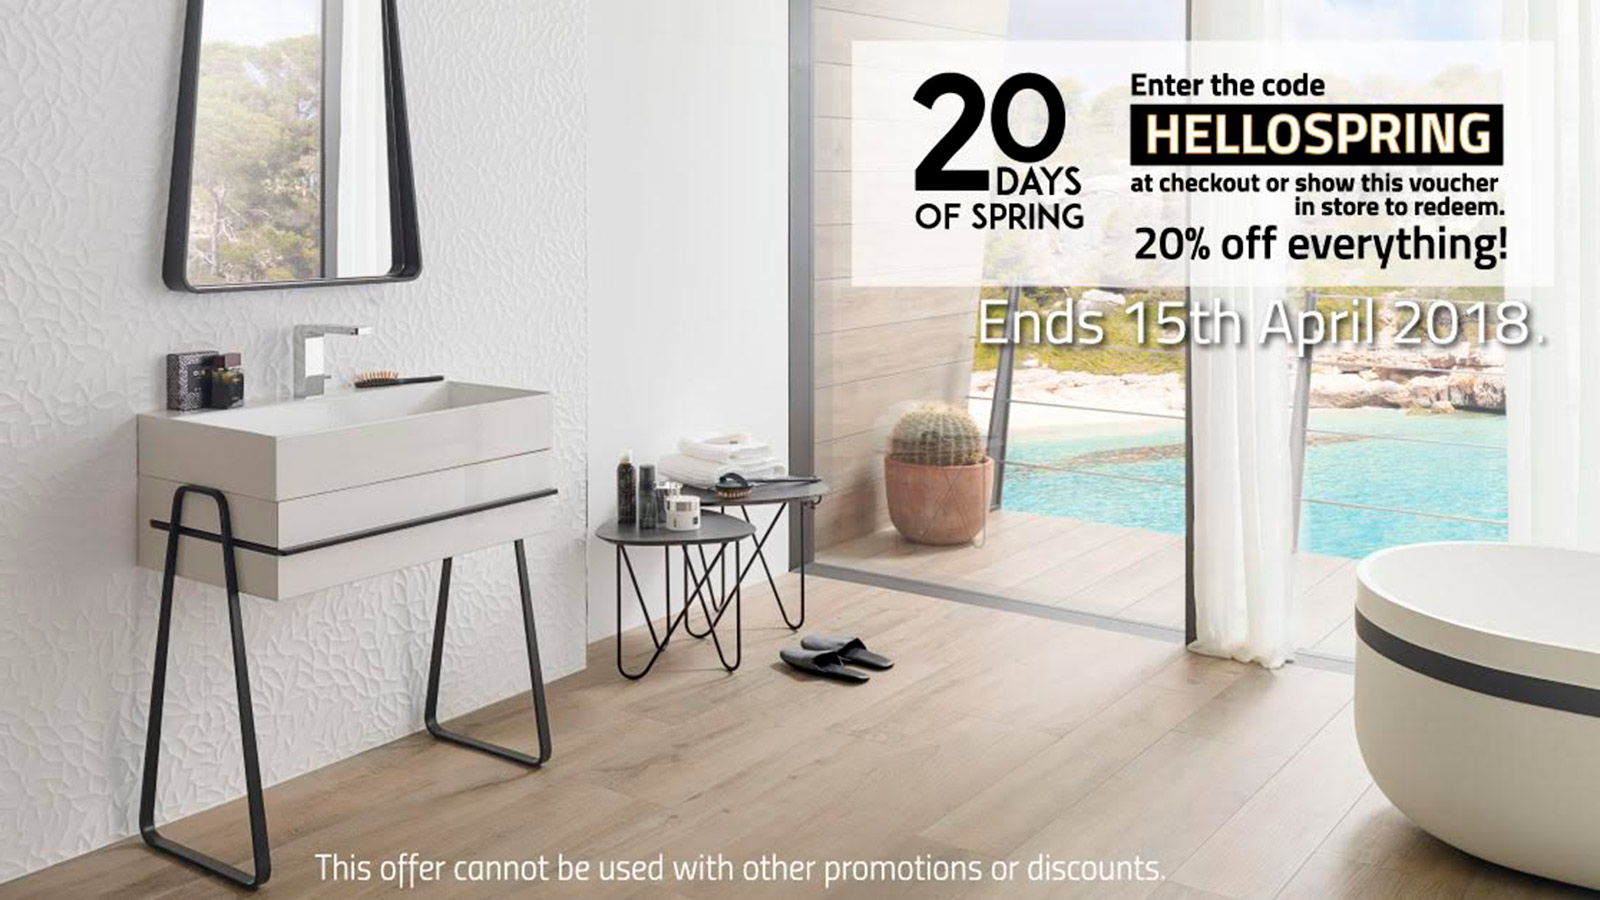 [EXPIRED] Porcelanosa SALE: 20 days of spring. Up to -20% OFF until 15th April 2018